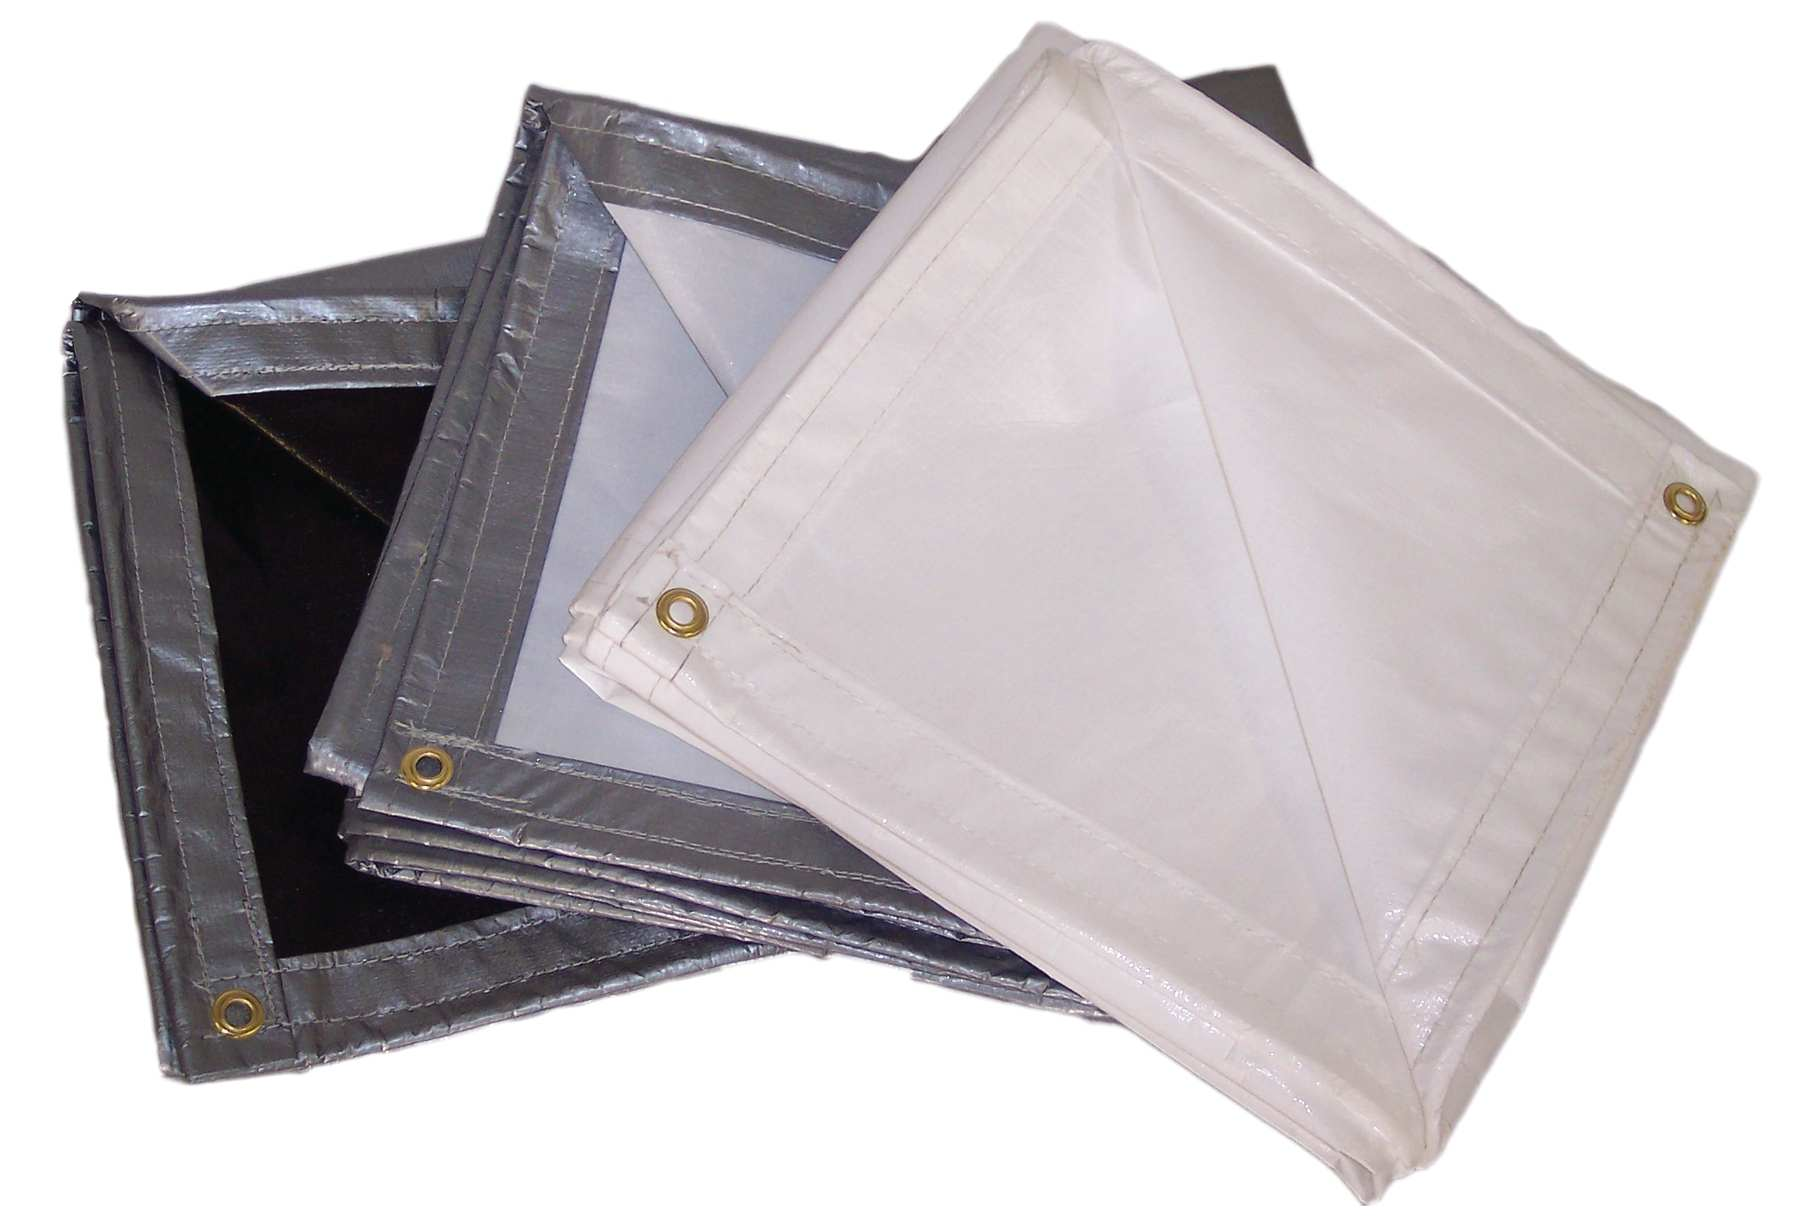 Heavy Duty Reinforced Polyethylene Tarps – 12 mil., 7 oz./sq. Yd.; Size (ft.) 50 x 50